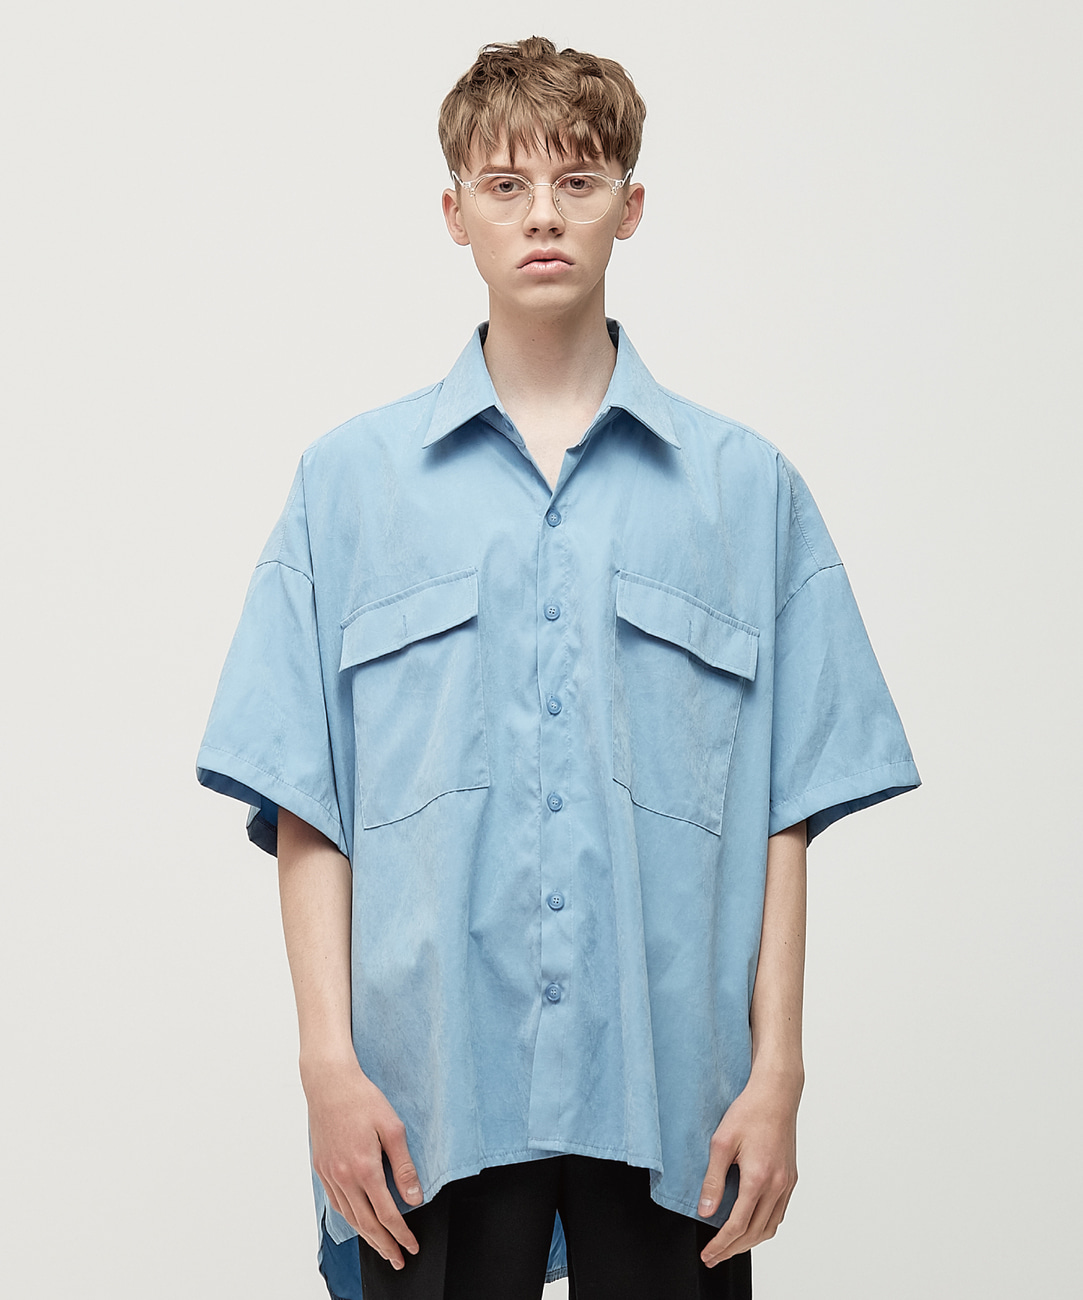 DWS OVER-FIT LABEL SHIRT(SKY BLUE)